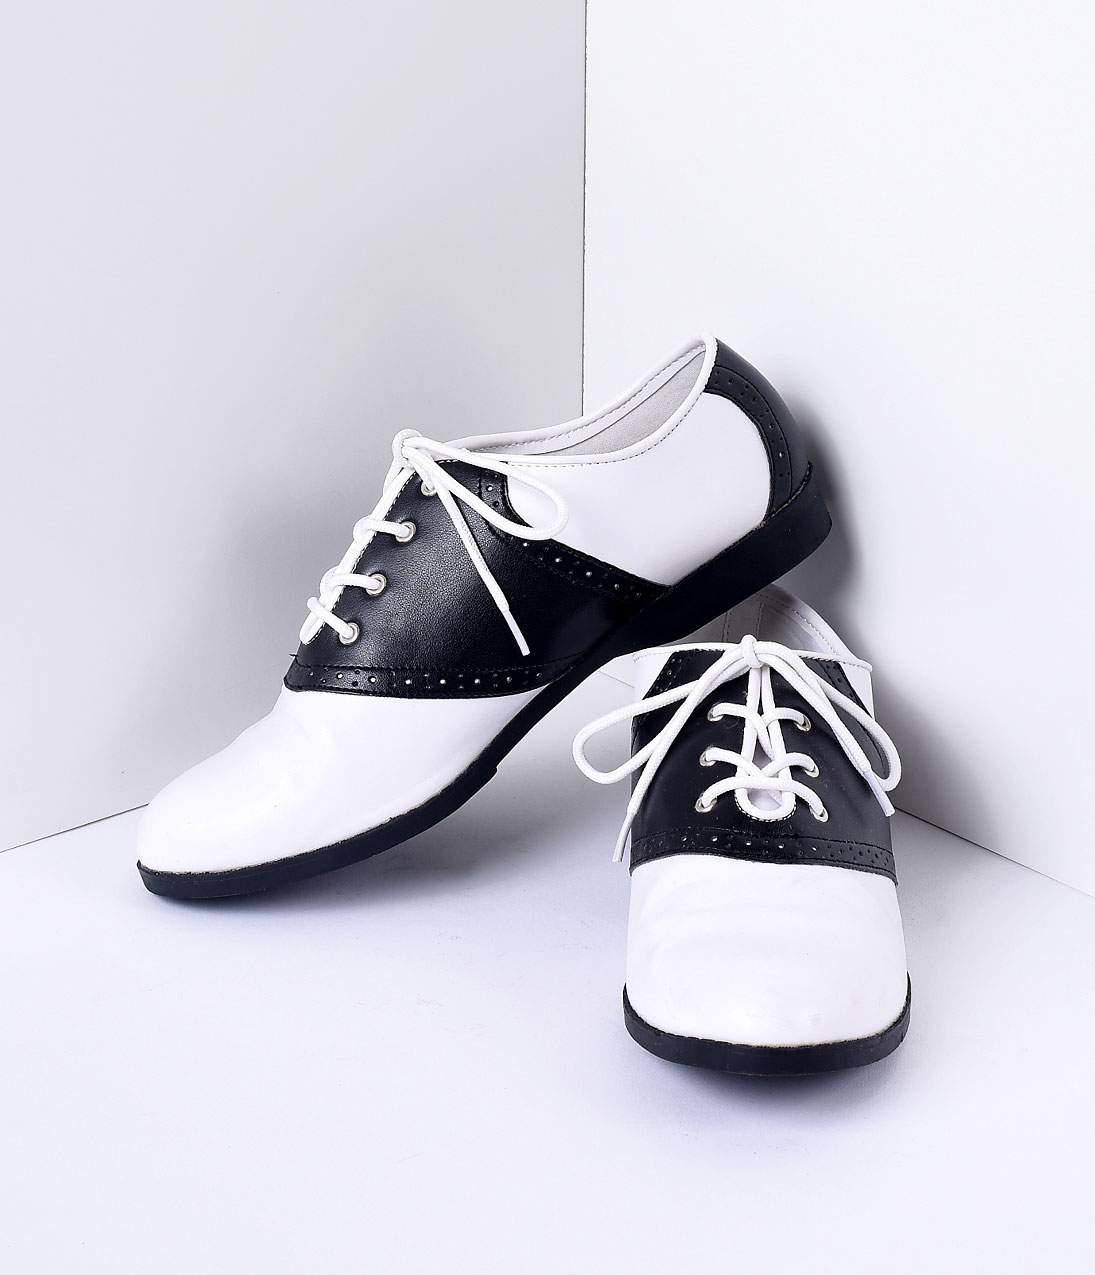 Vintage Shoes, Vintage Style Shoes Black  White Classic Lace Up Saddle Shoes $52.00 AT vintagedancer.com